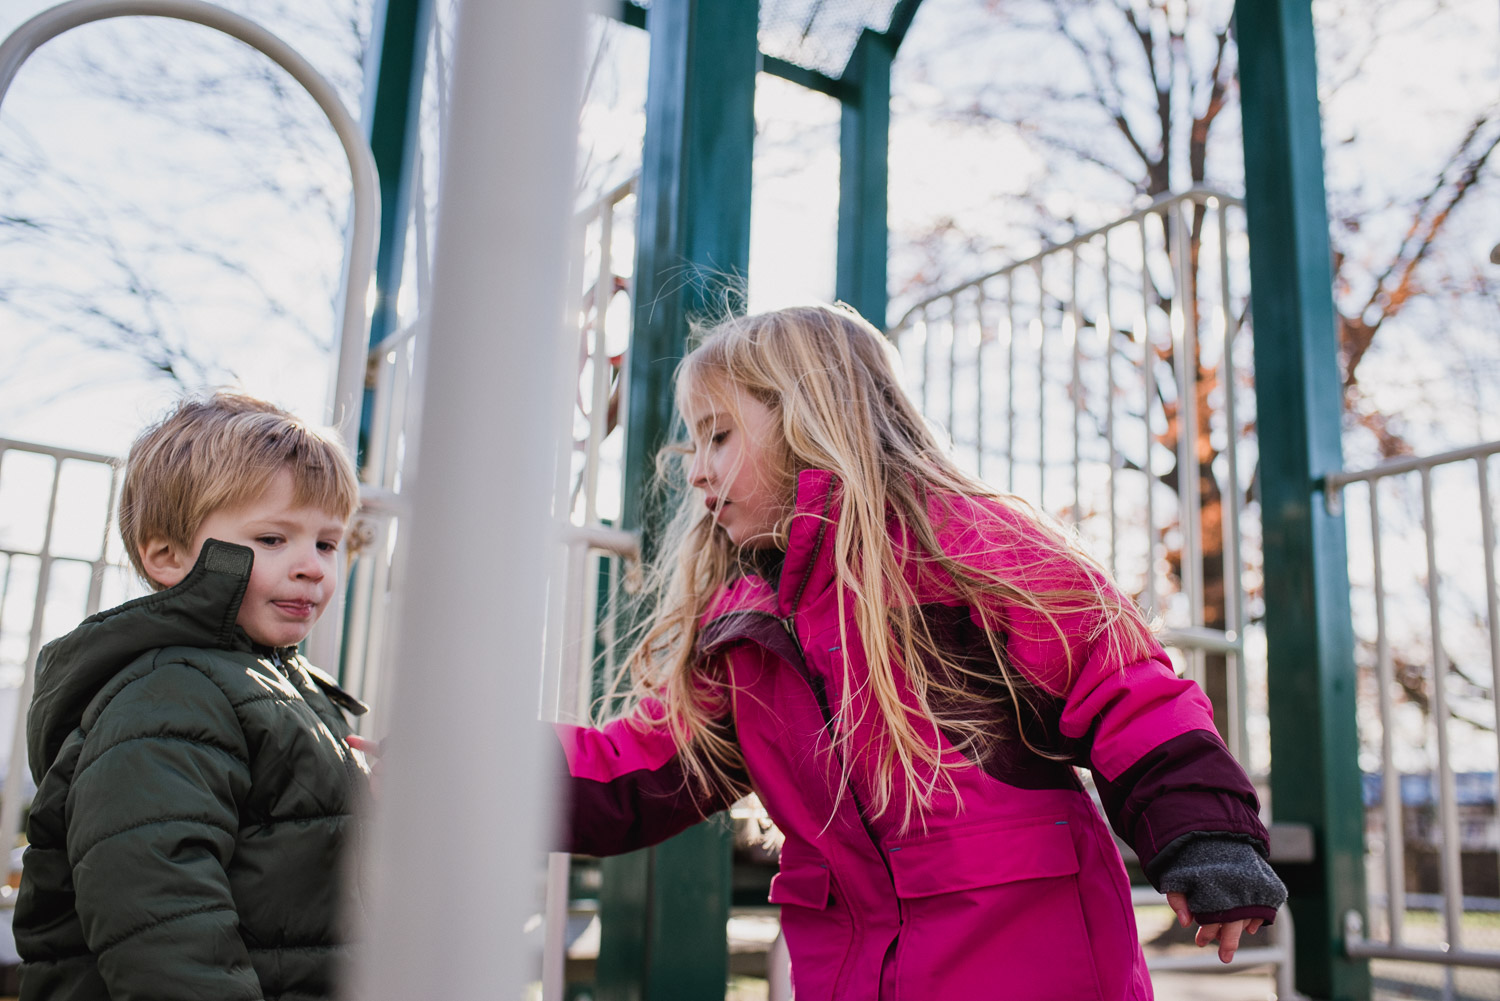 A boy and girl playing on playground equipment on a cold day.